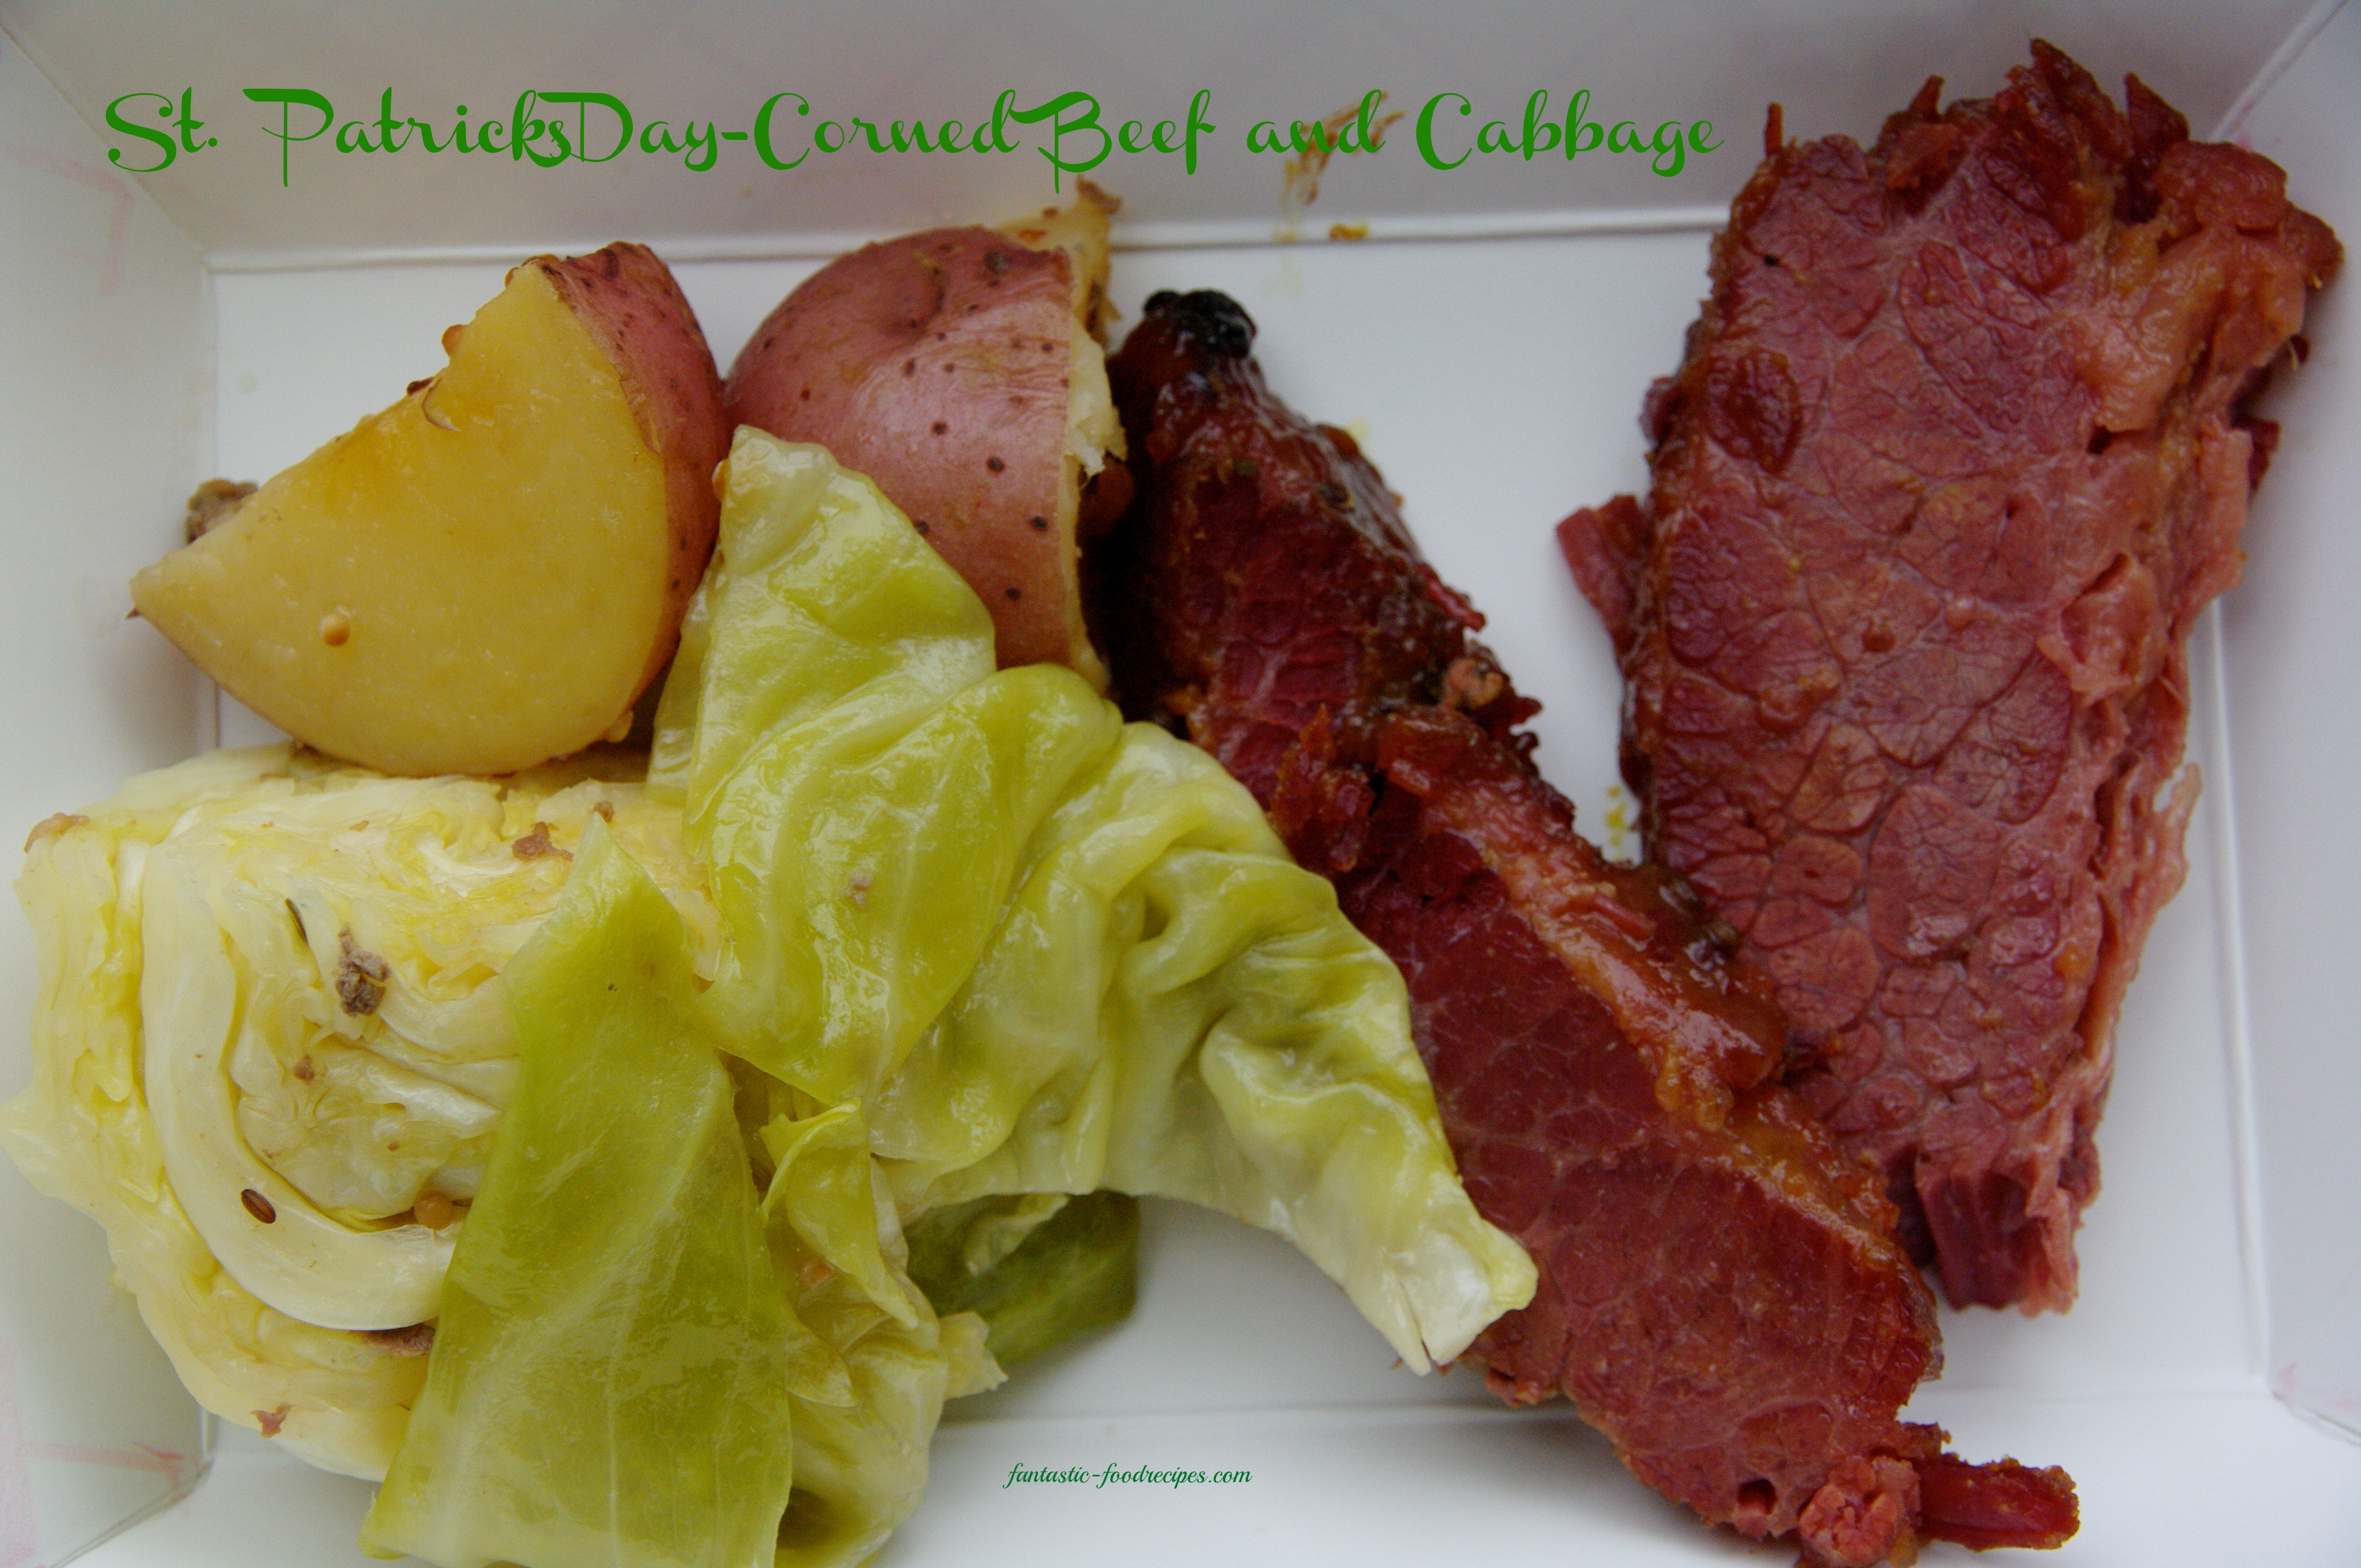 st patricks day corned beef and cabbage